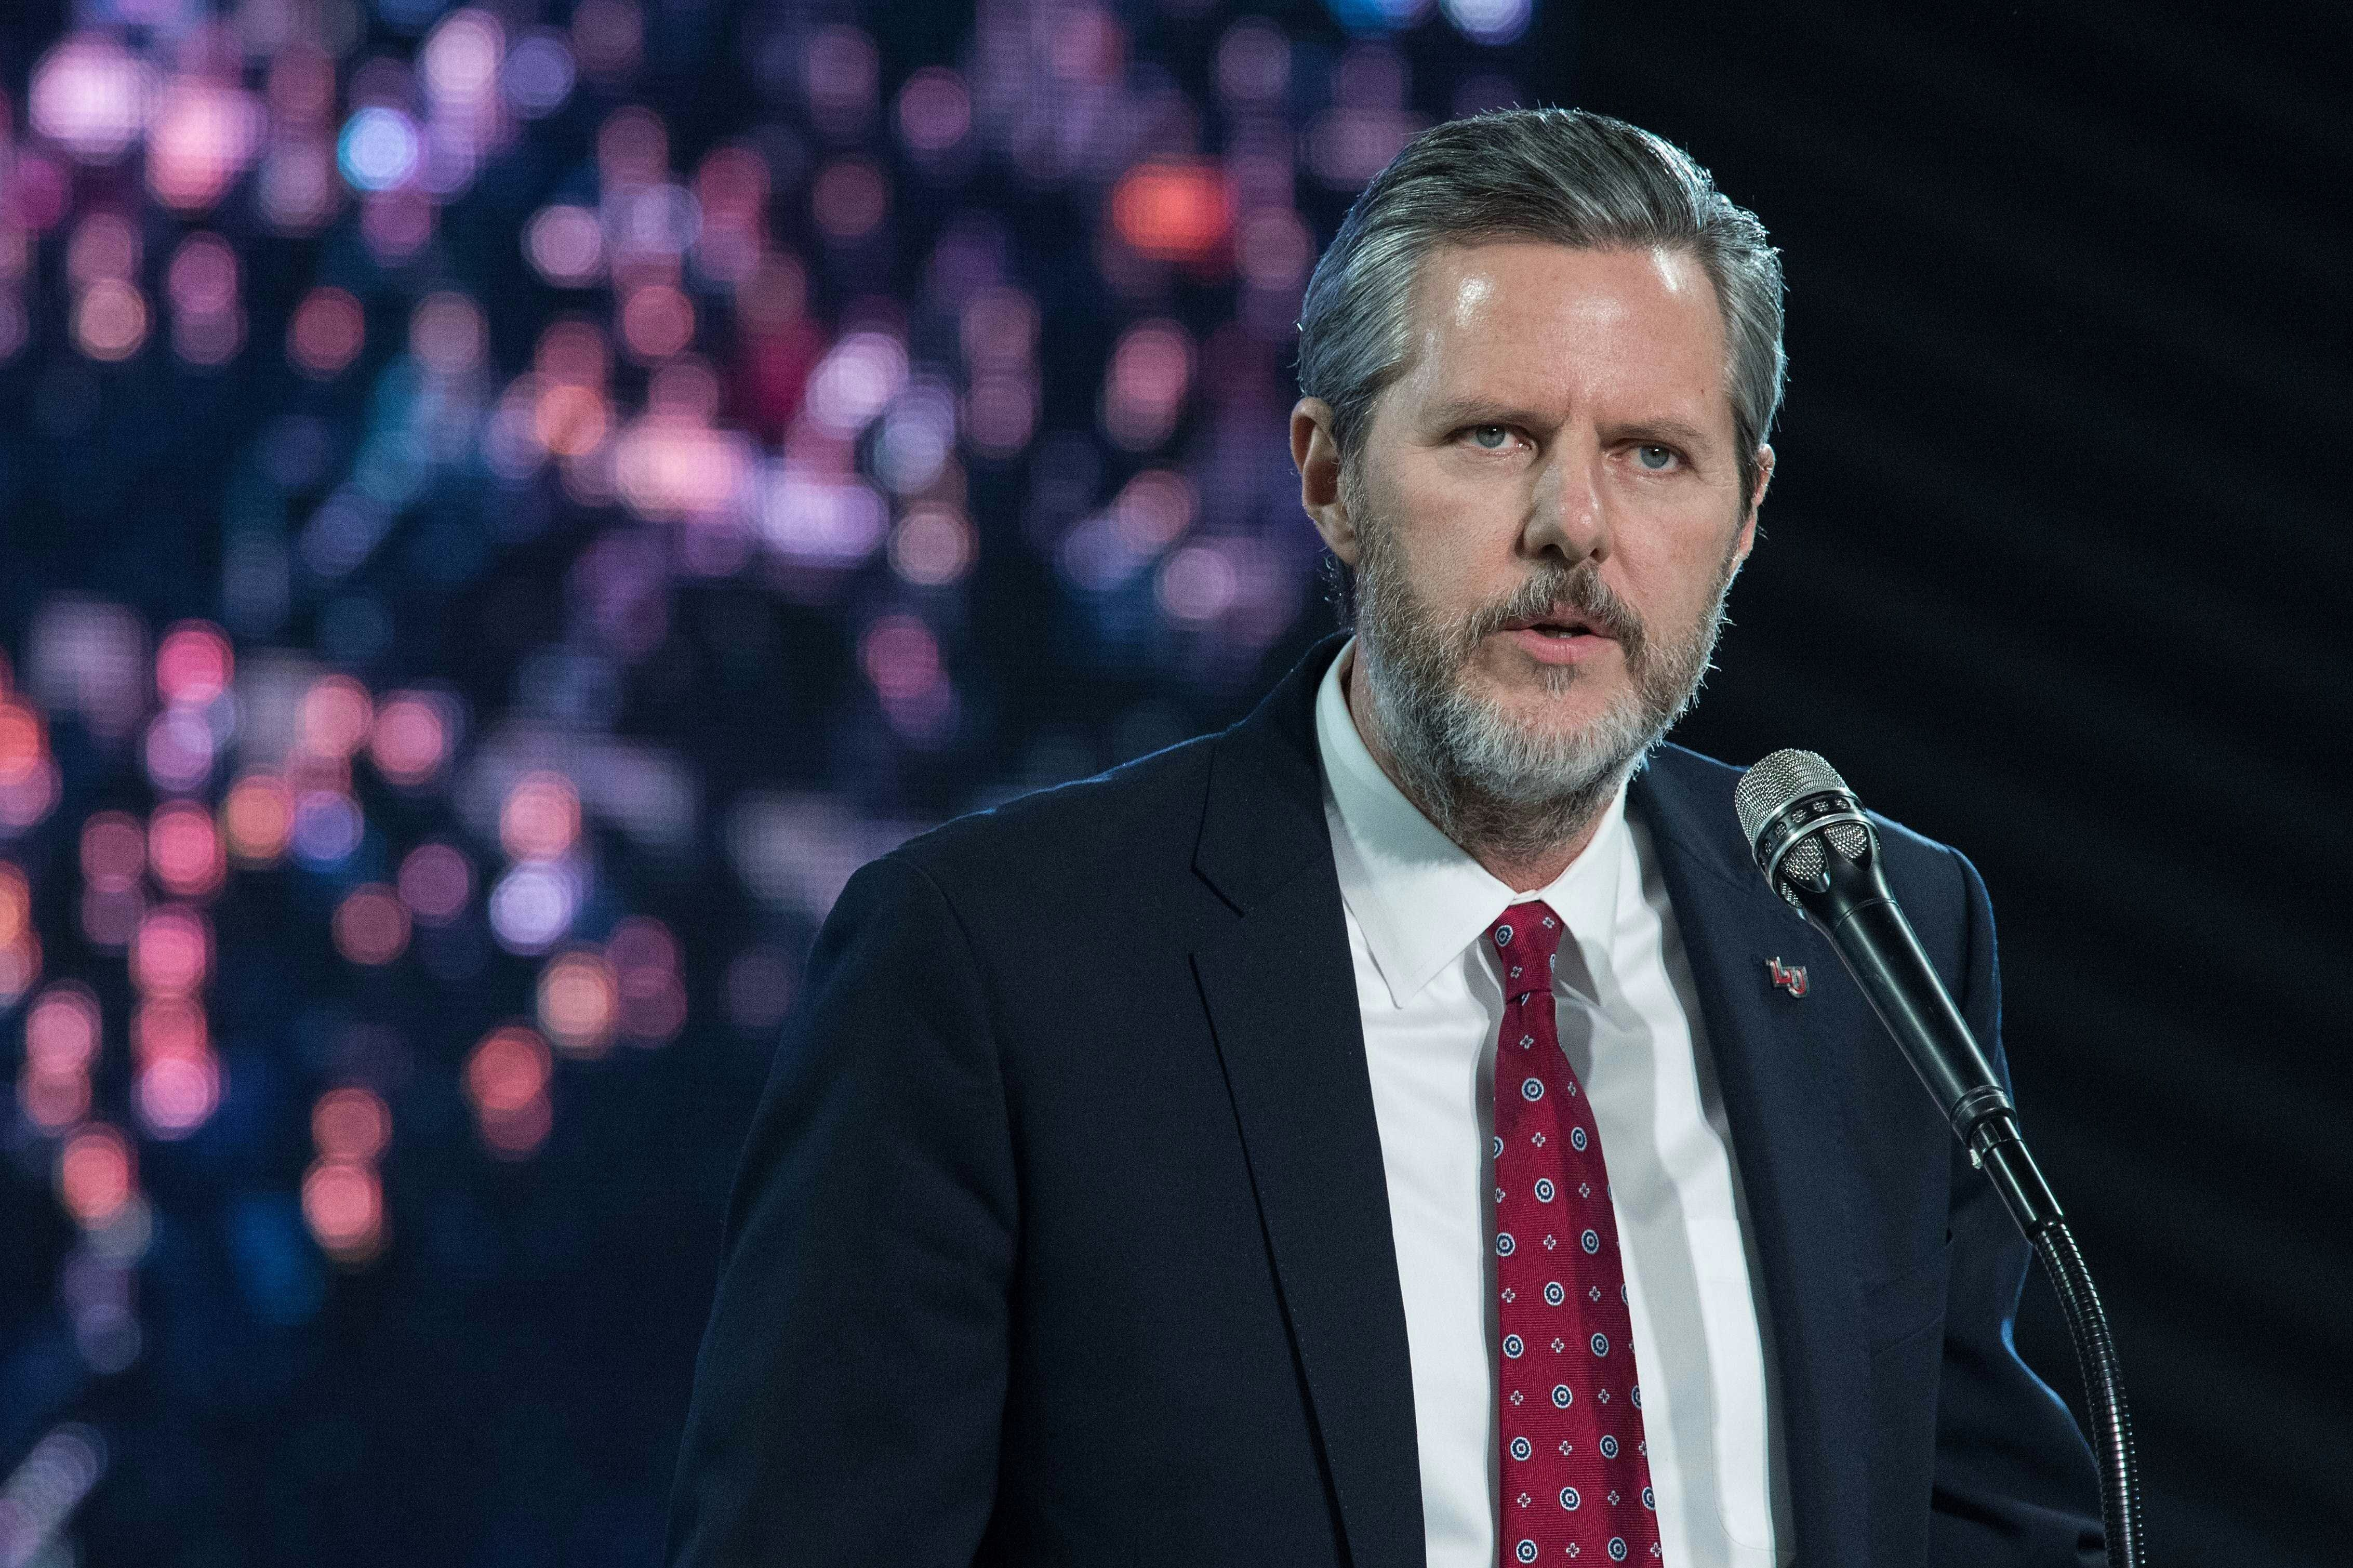 Liberty University president Jerry Falwell Jr. introduces U.S. Republican  presidential candidate Donald Trump at a